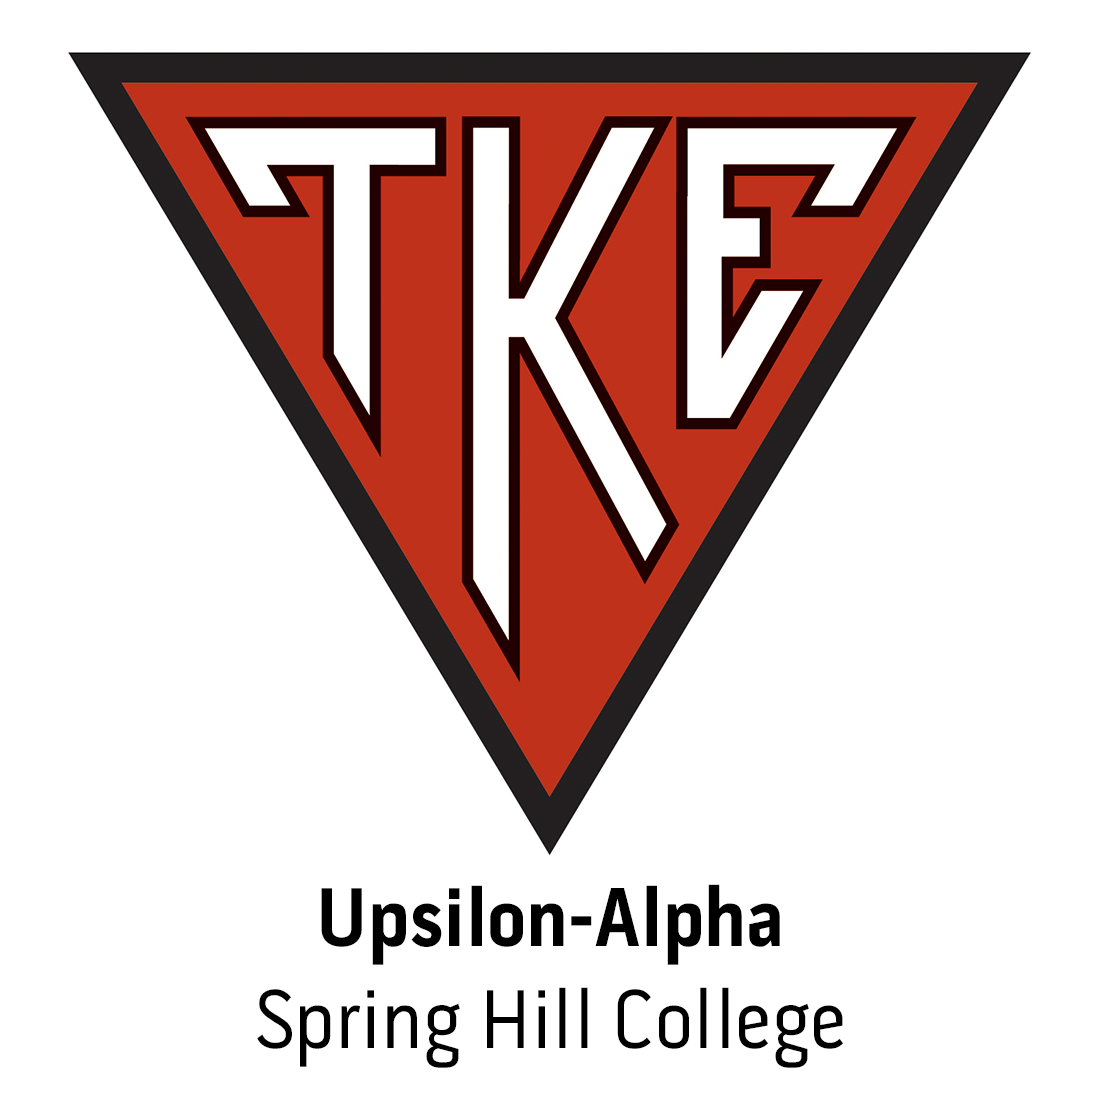 Upsilon-Alpha Chapter at Spring Hill College